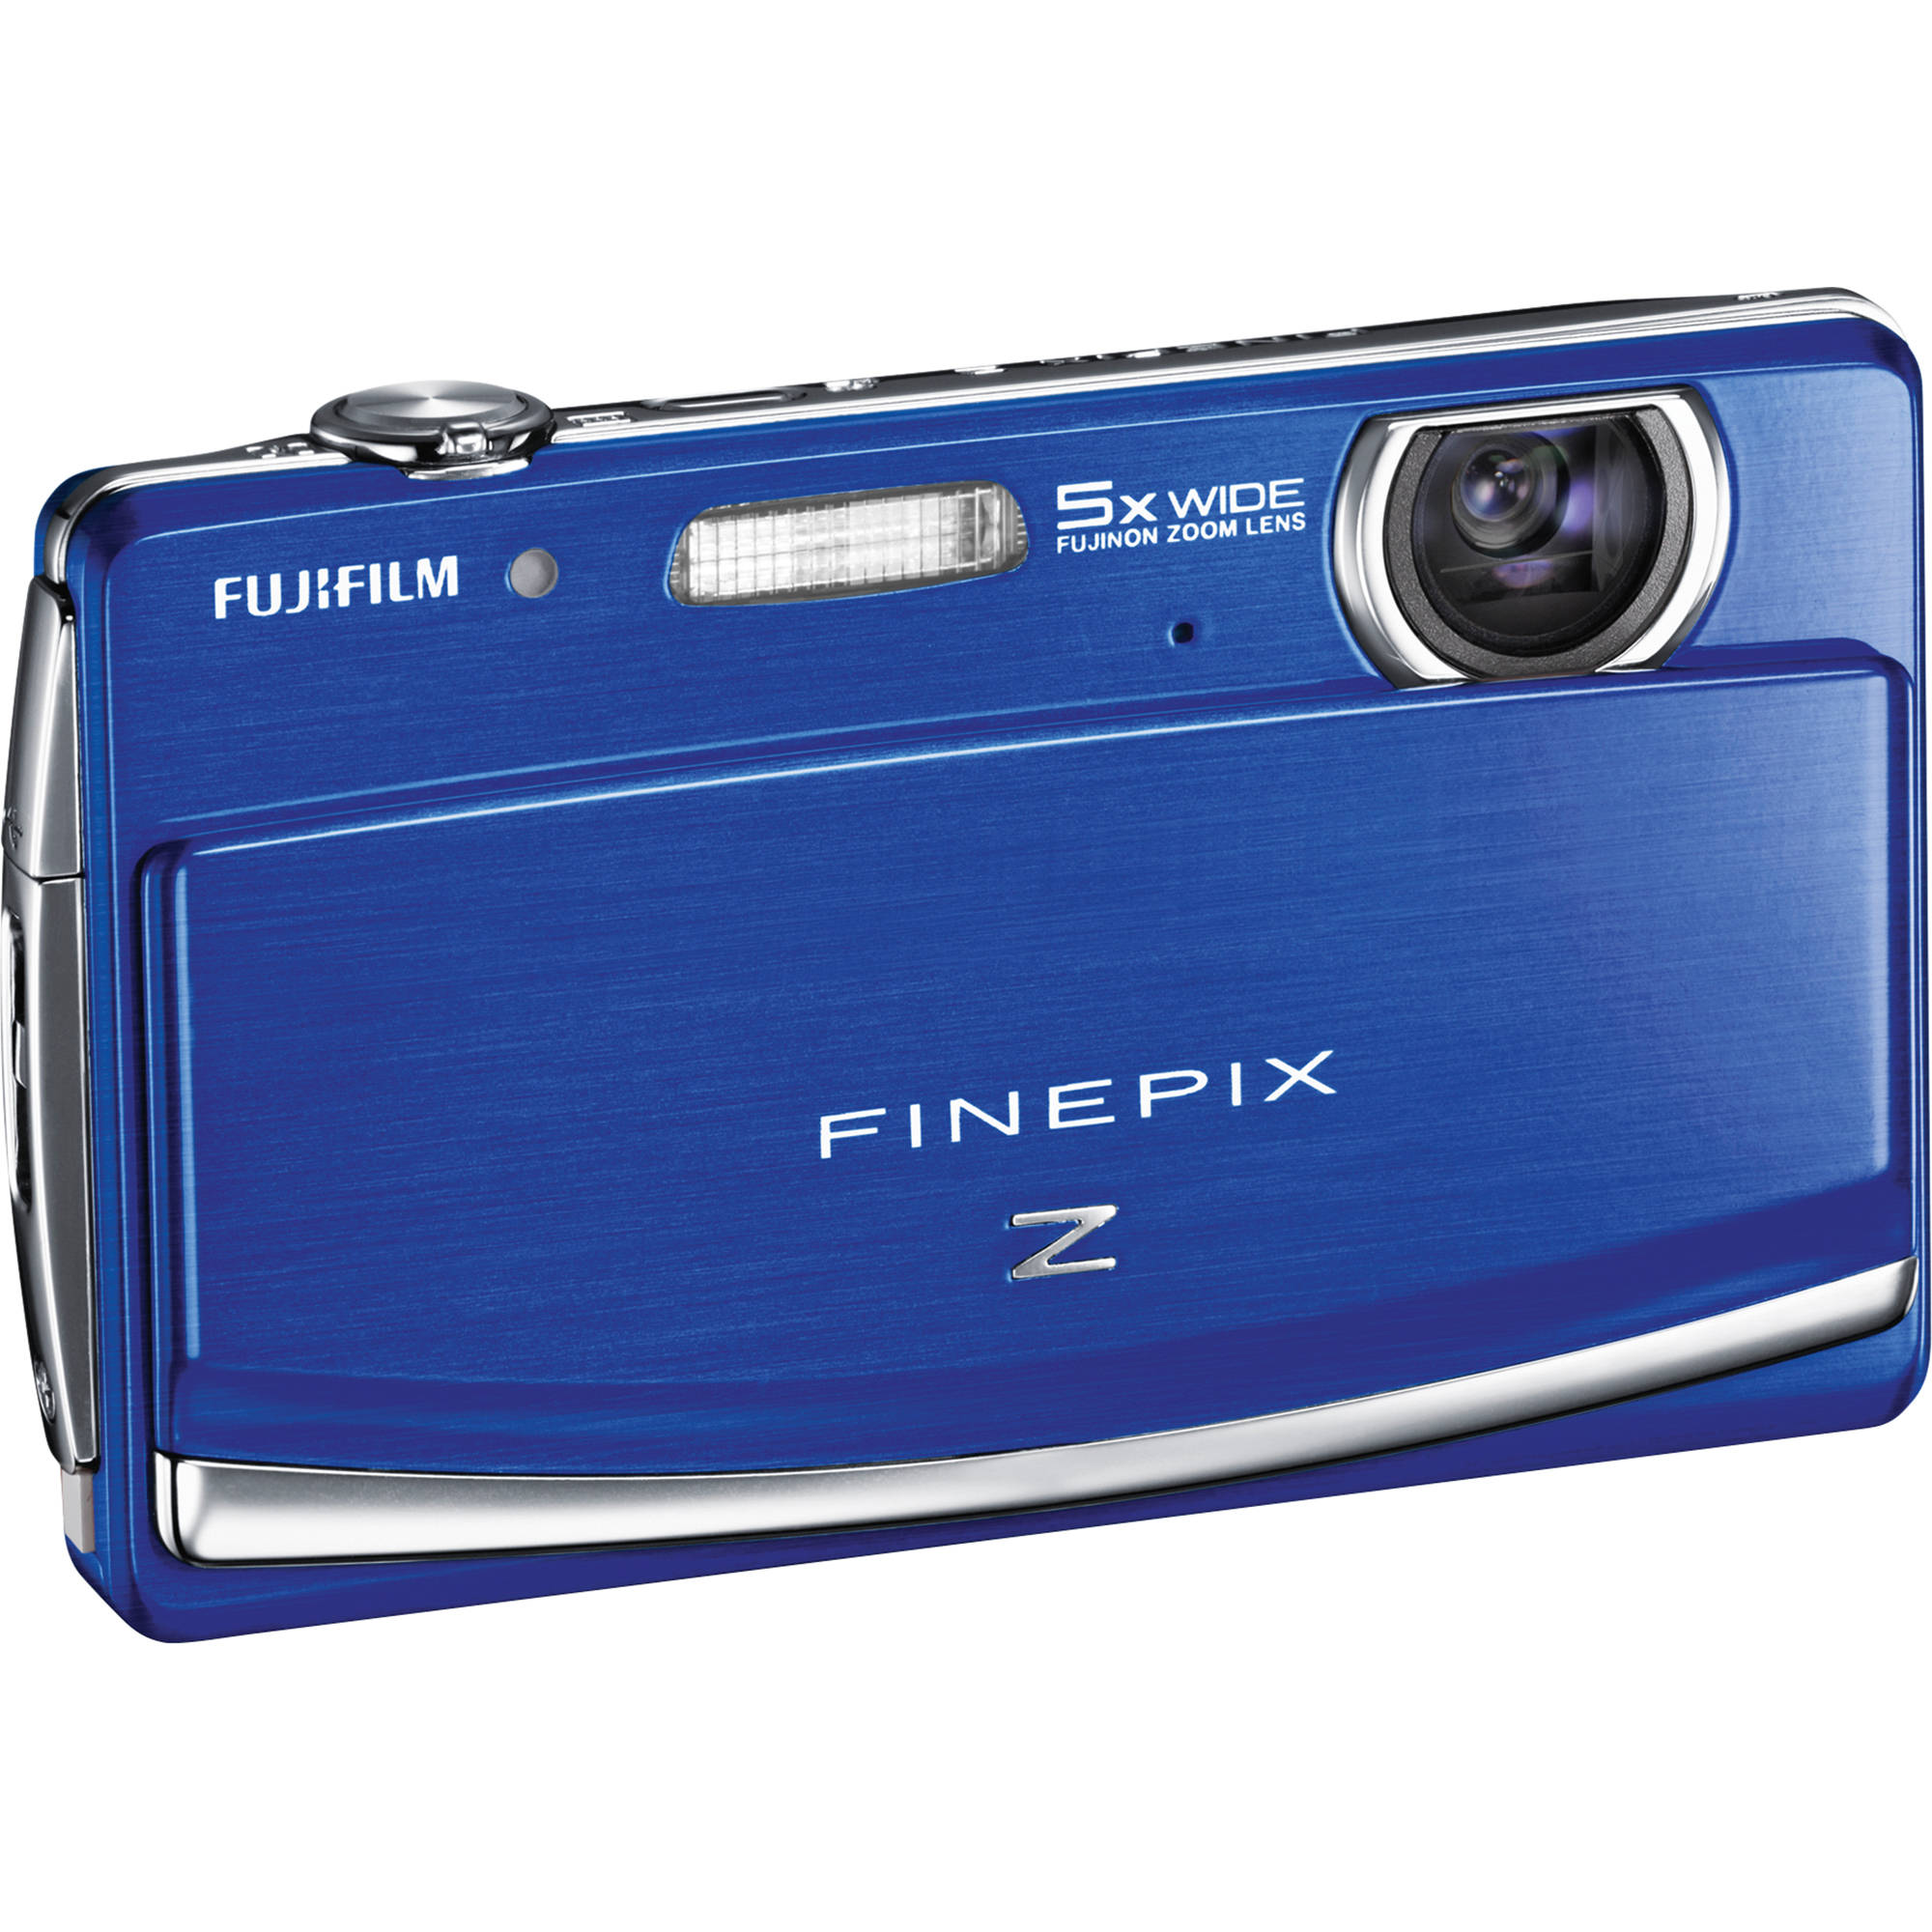 Fujifilm FinePix Z90 / Z91 Camera